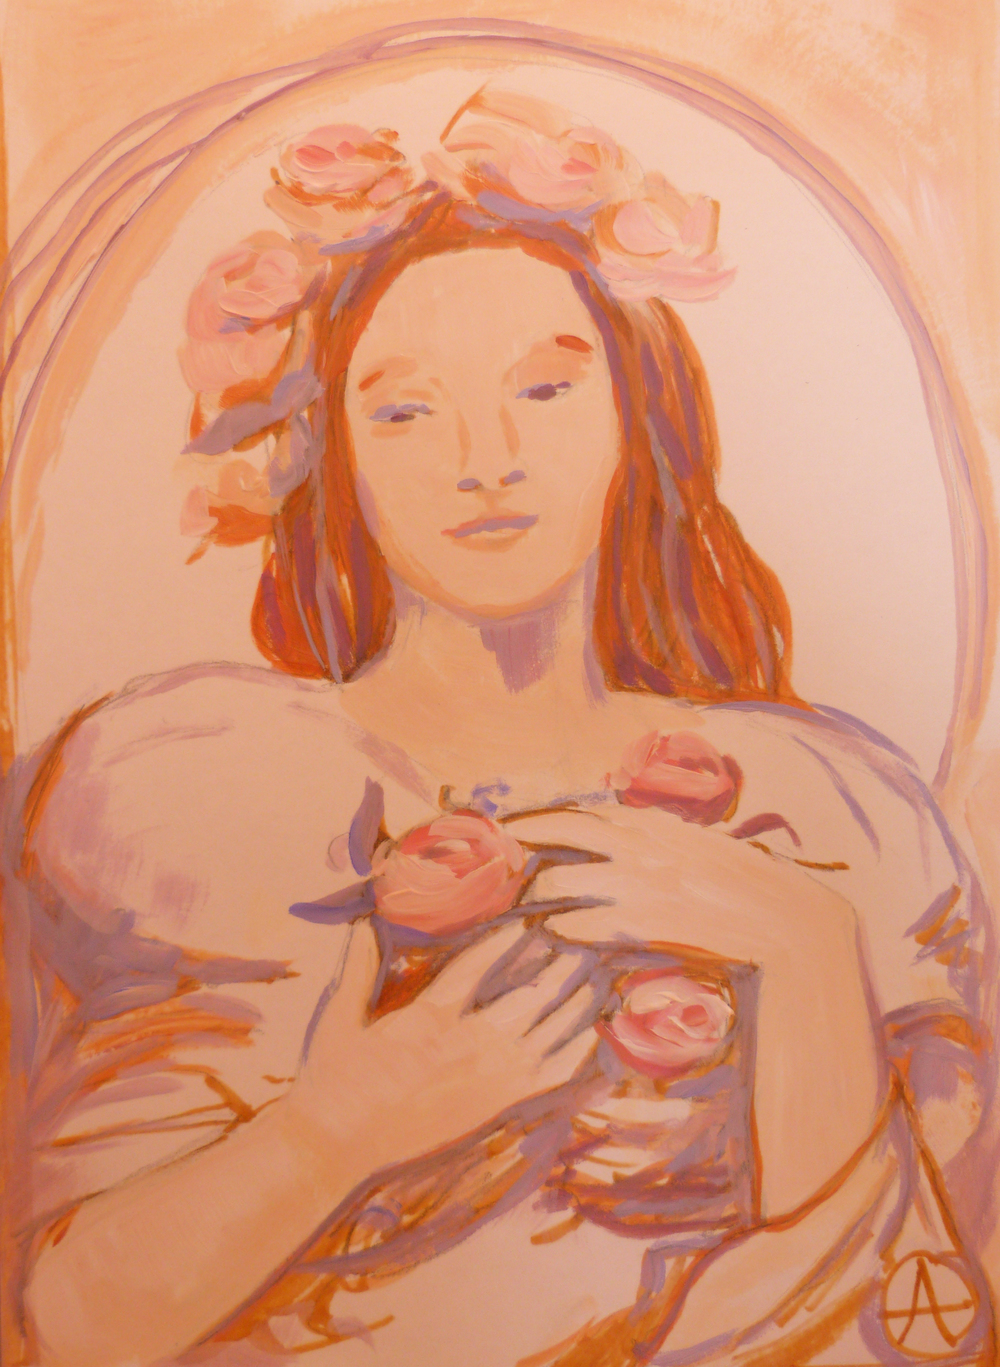 """SOLD, A Bounty of Roses, Copyright 2012 Hirschten, Acrylic on Paper, 8"""" x 12"""